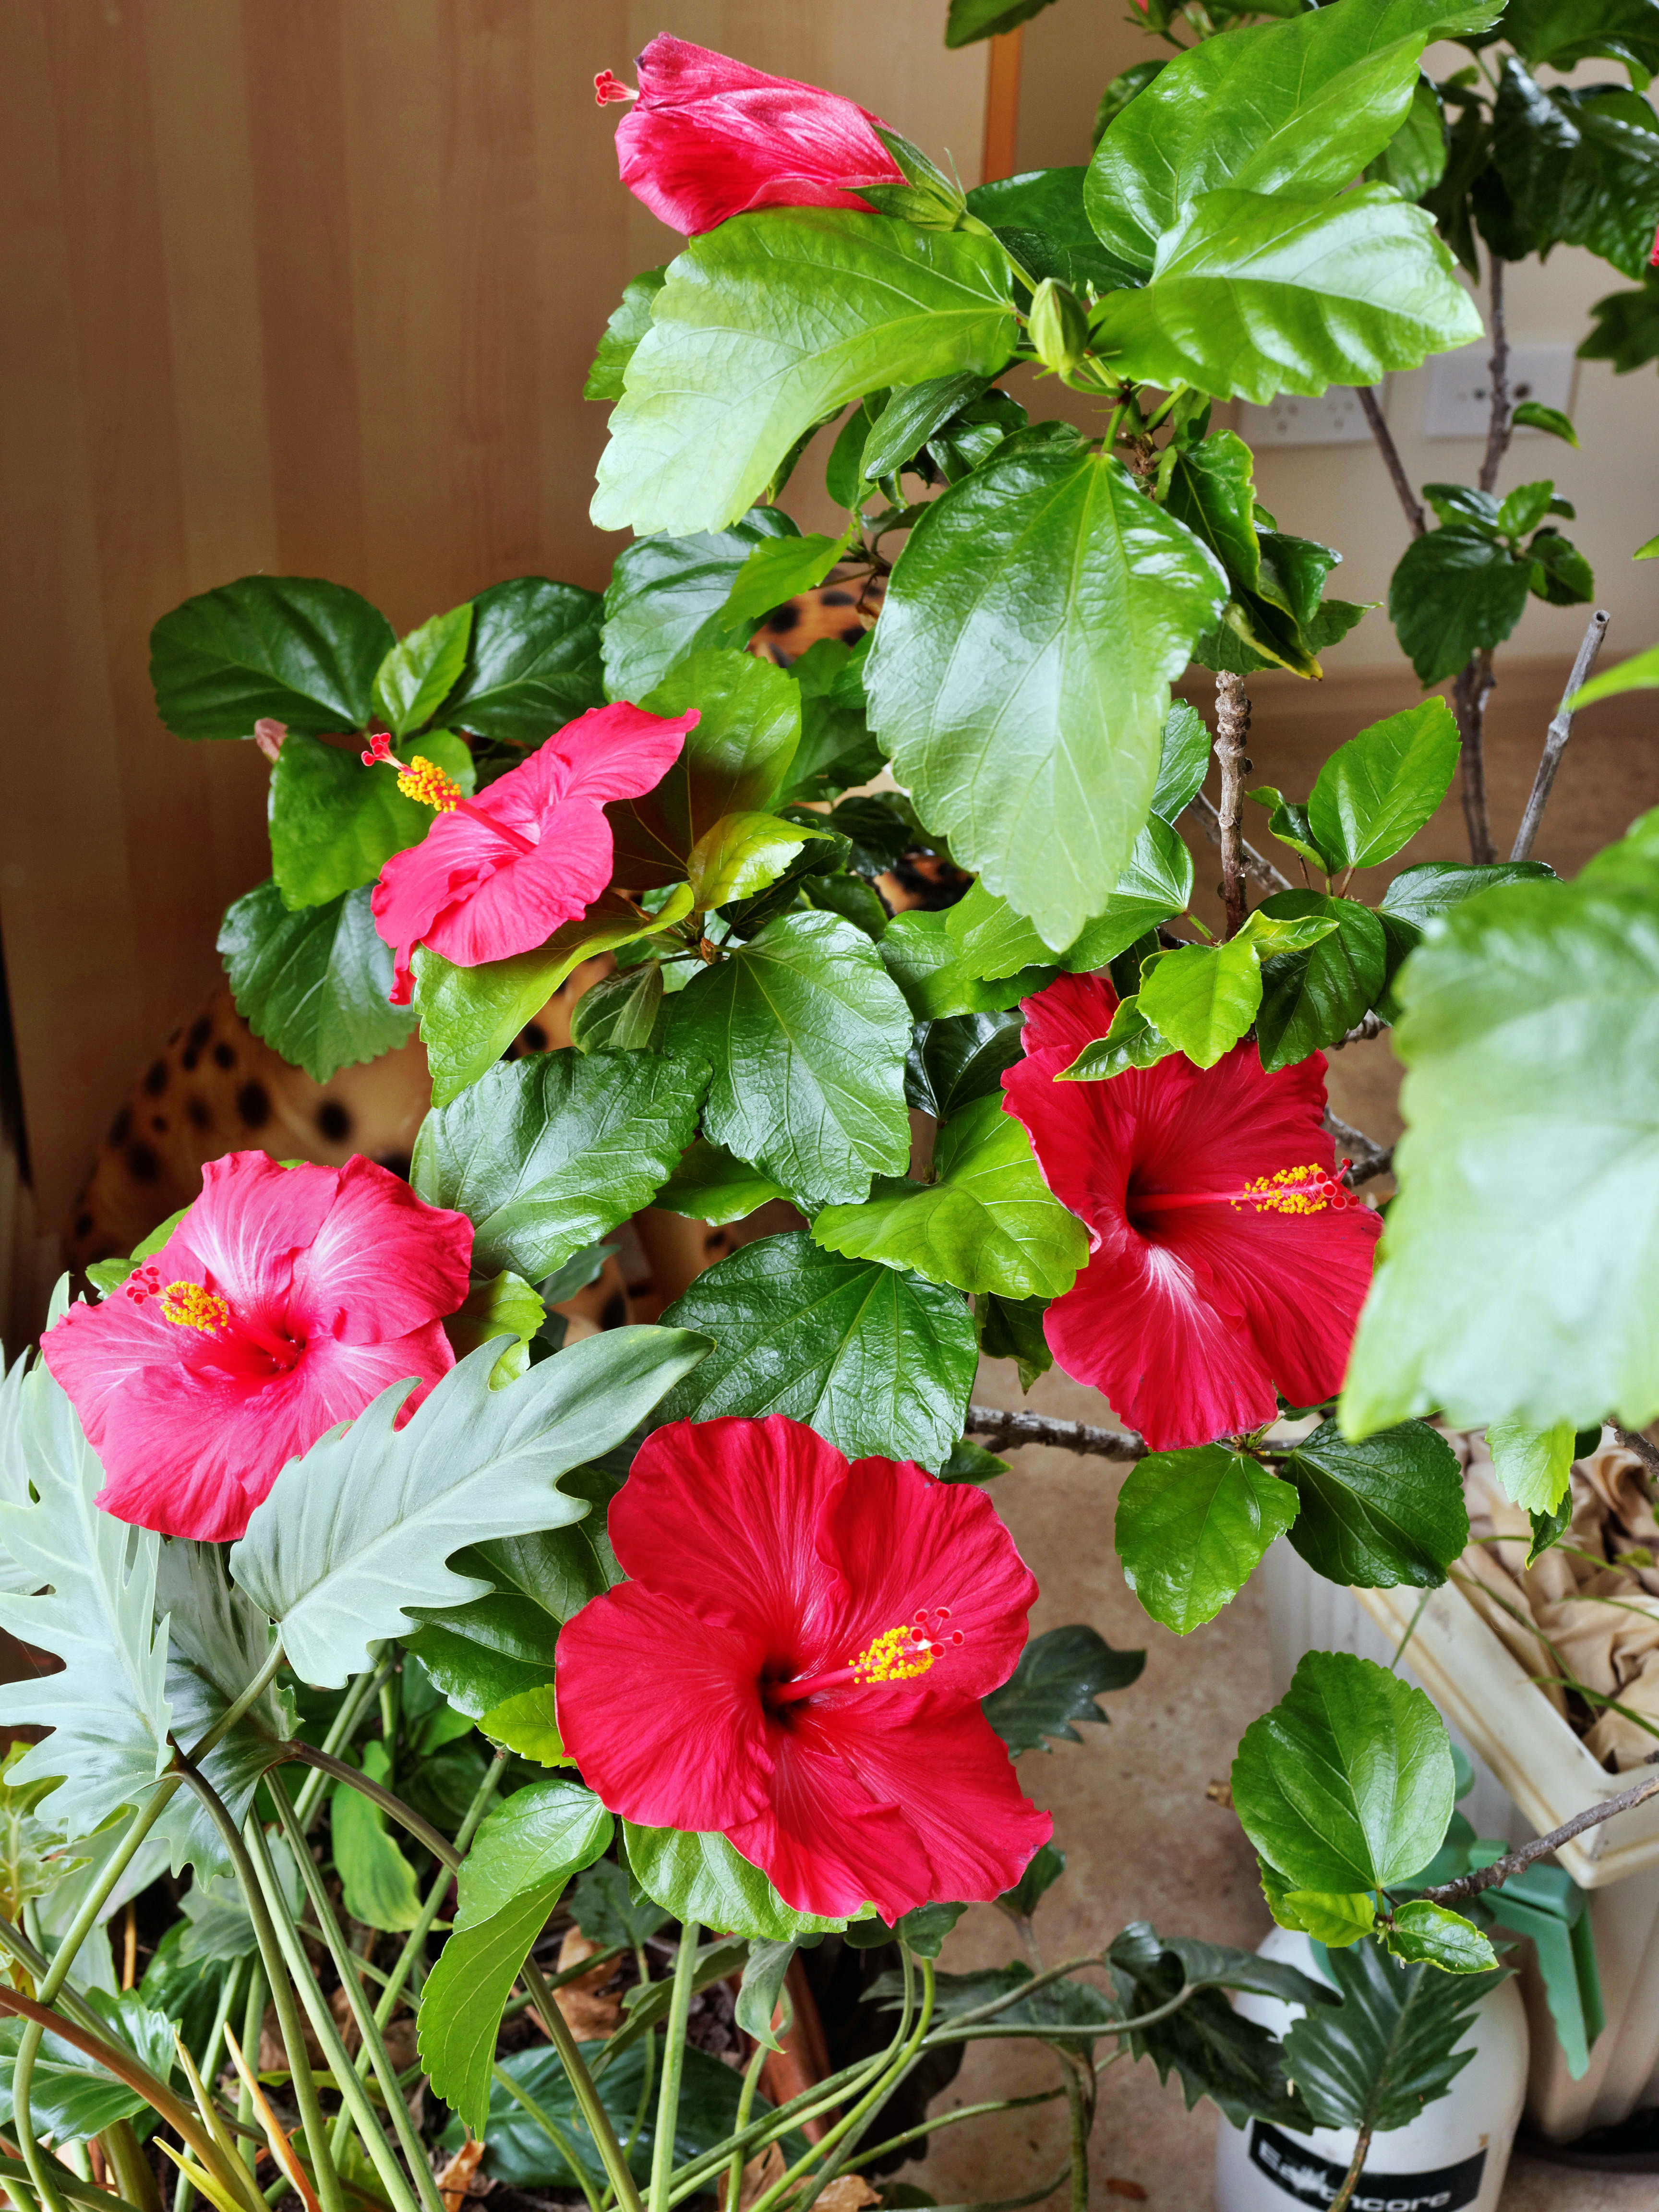 This should be Hibiscus.jpeg.  Is it missing?